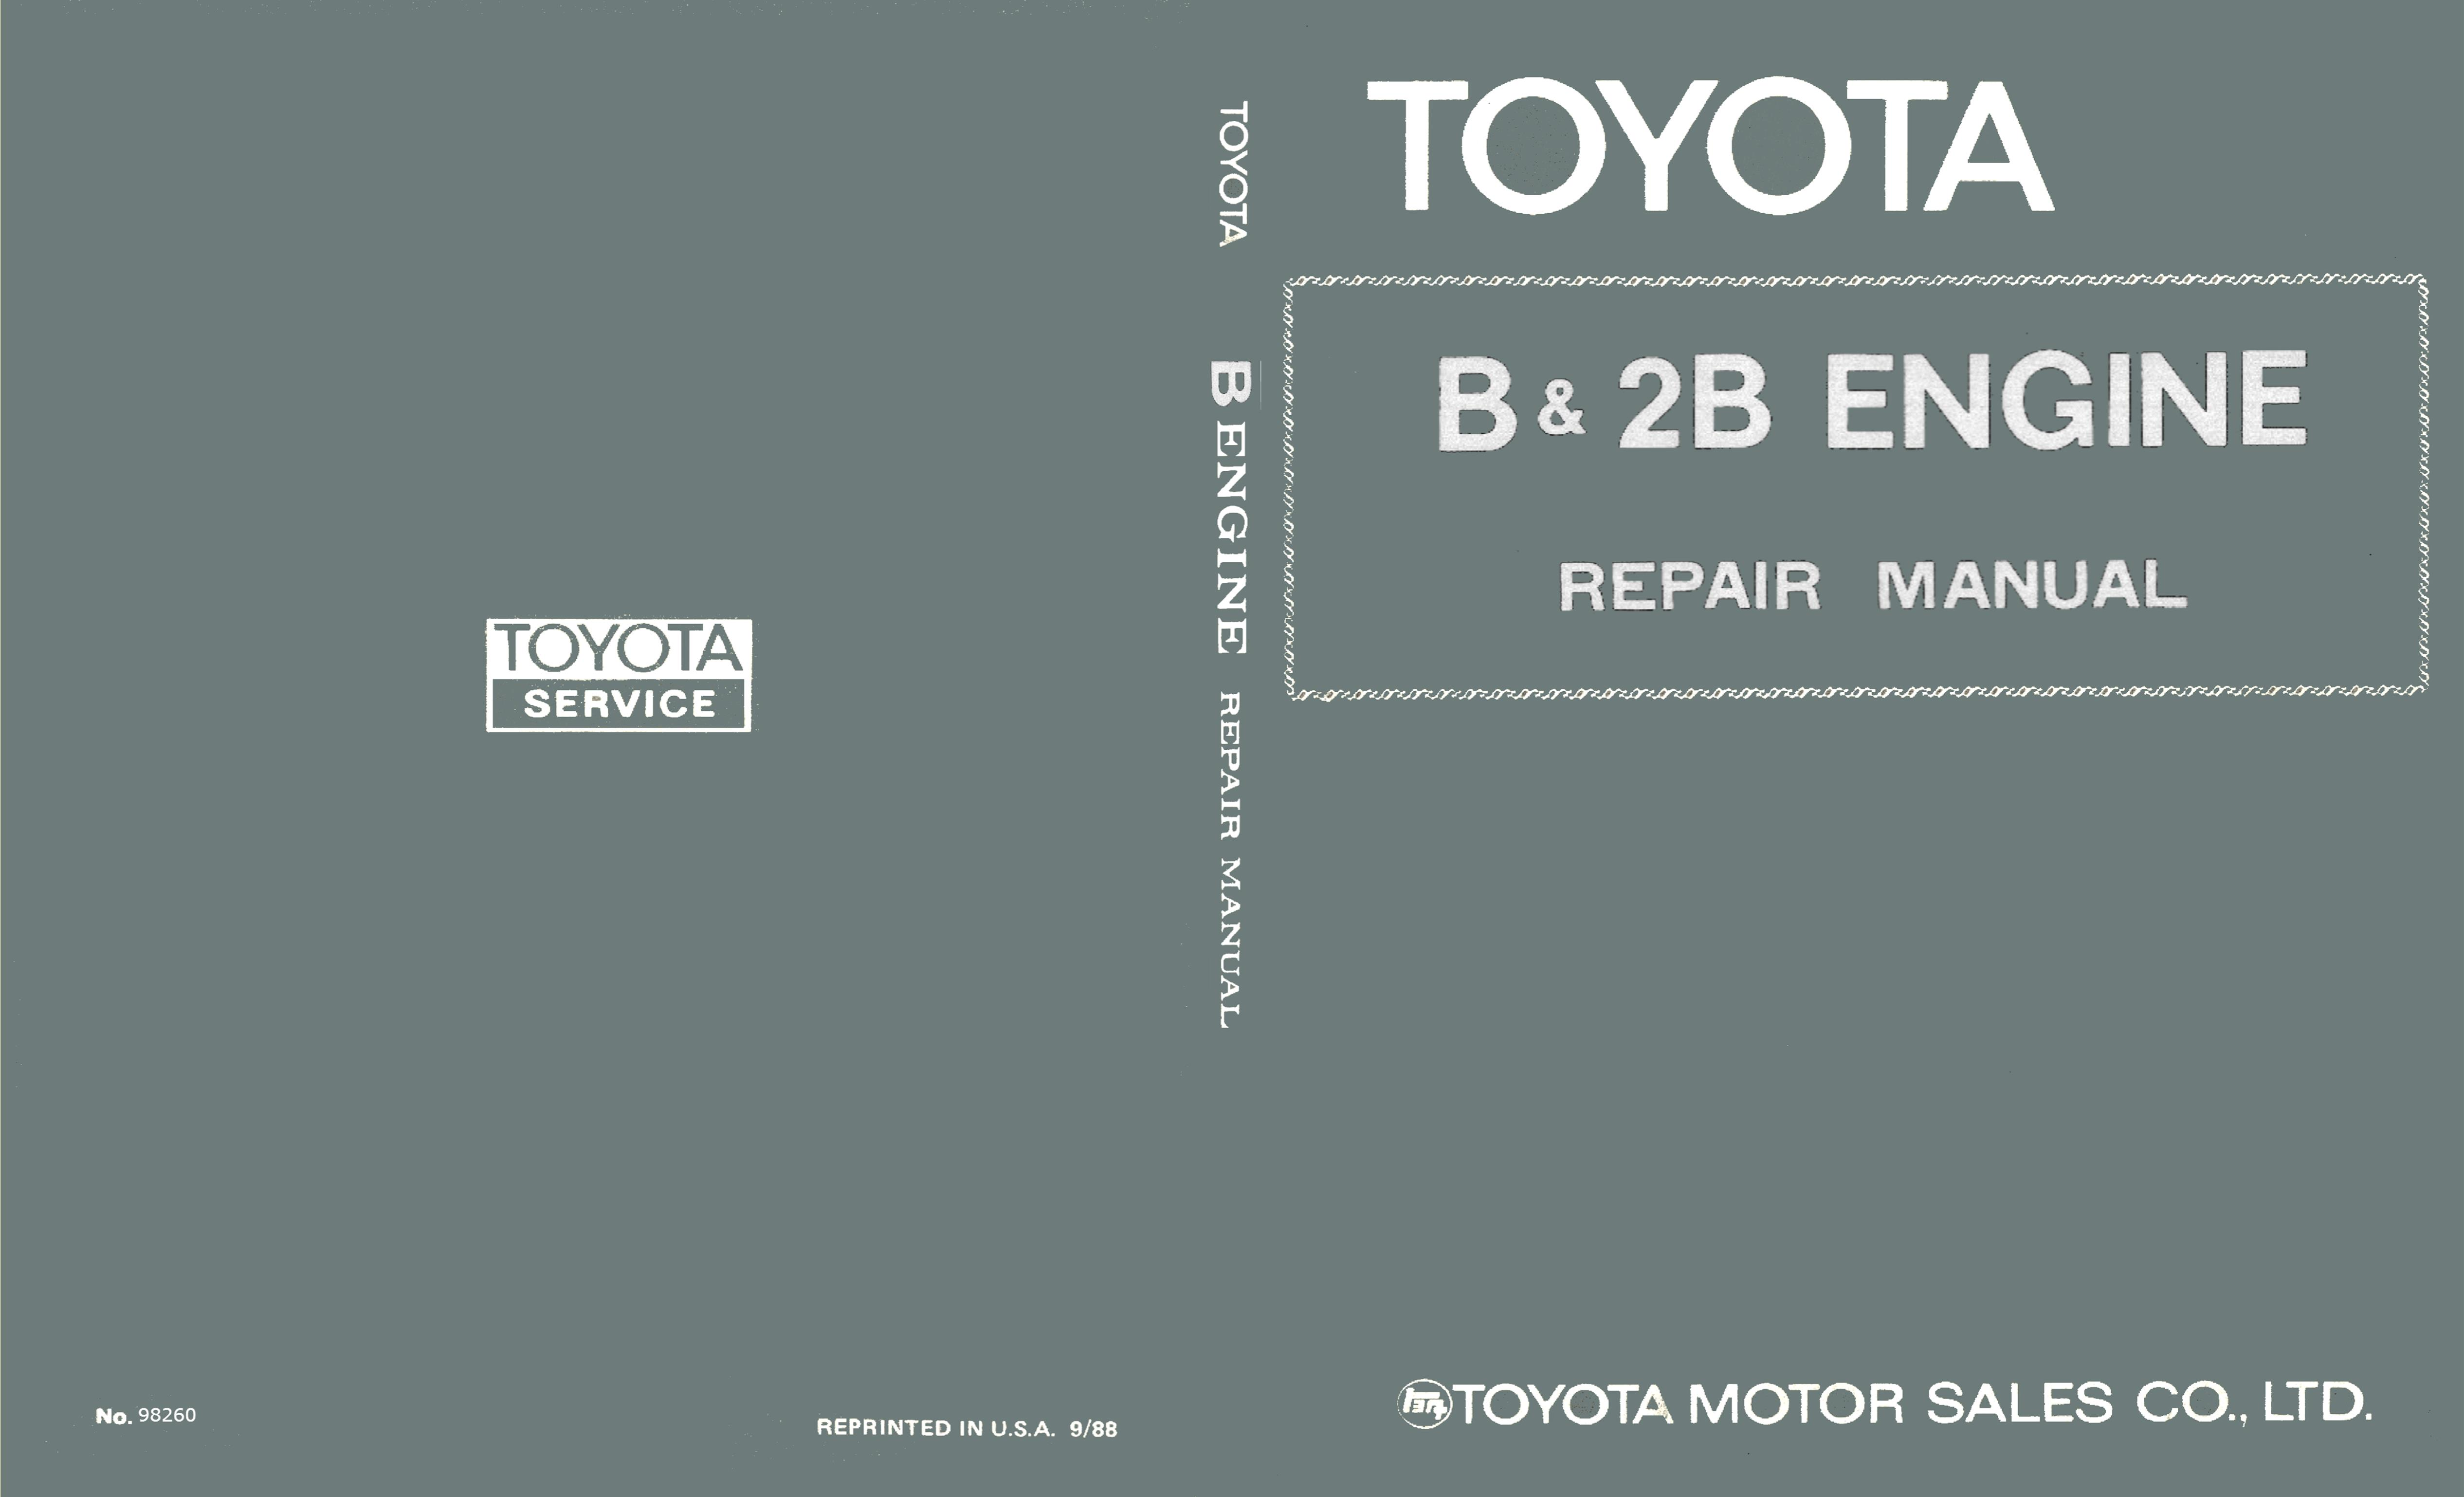 Toyota b 2b engine by clint weis 1700 thebookpatch toyota b 2b engine cover image fandeluxe Choice Image